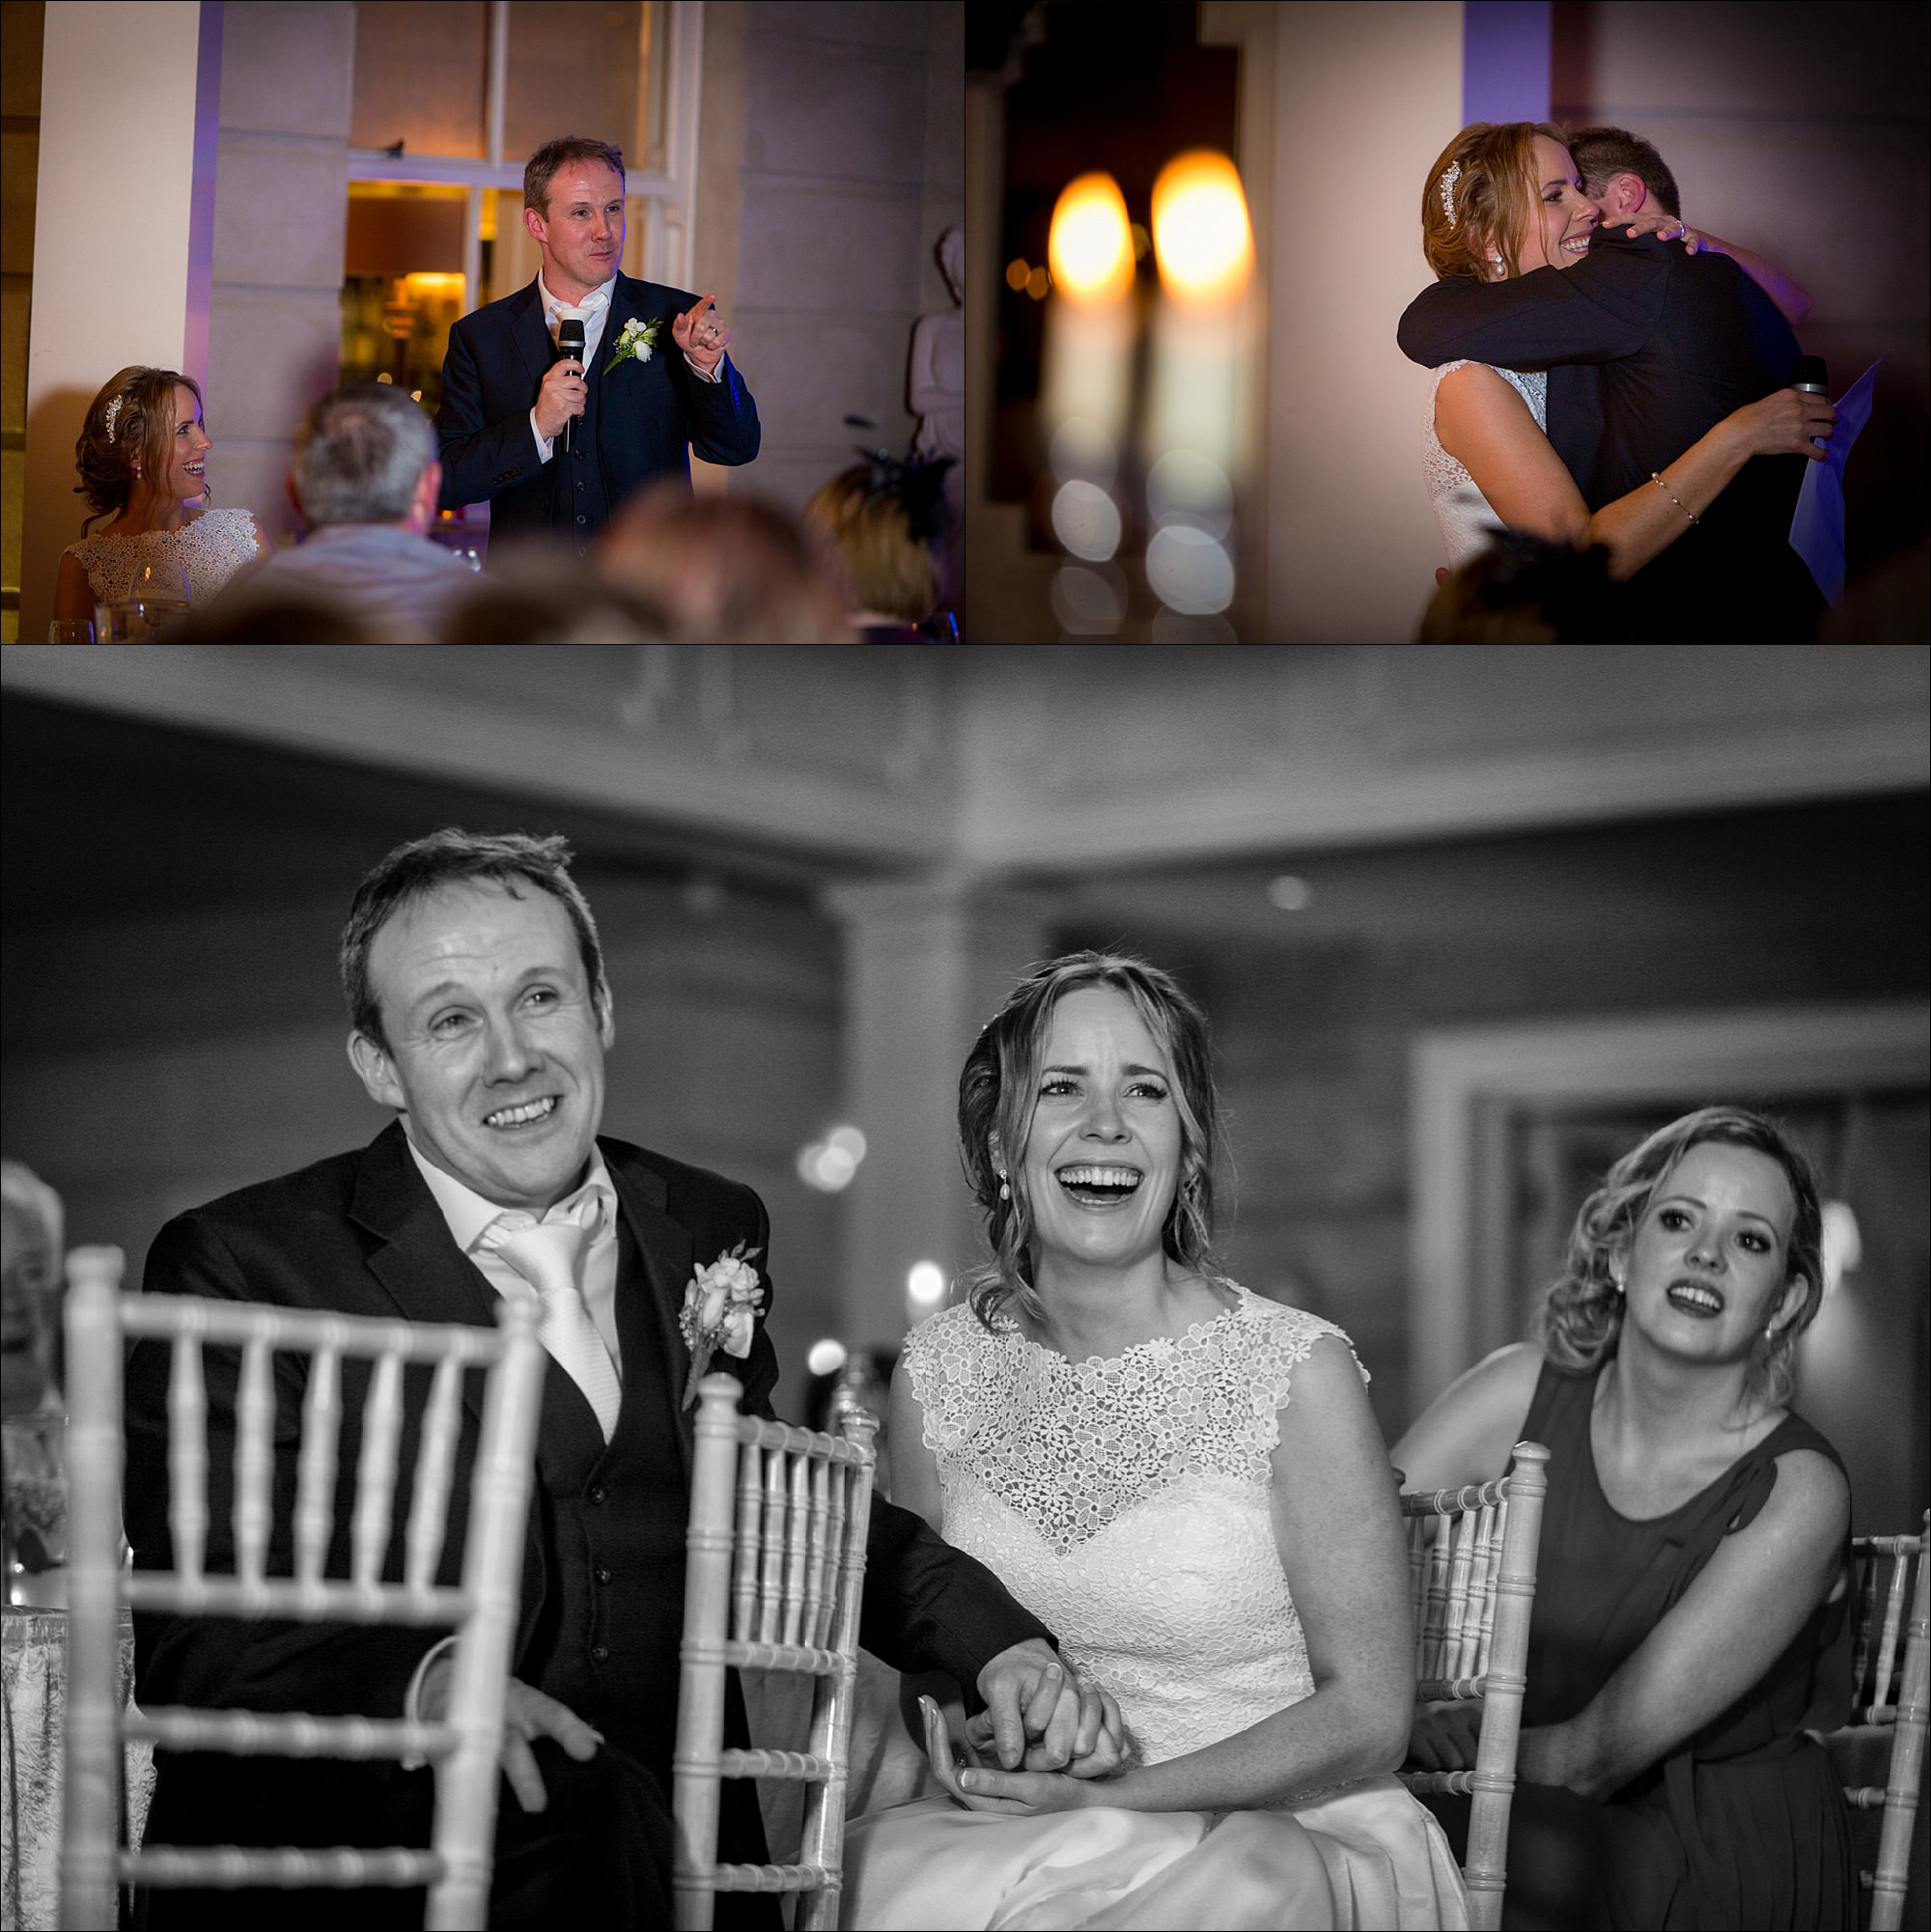 dublin wedding photographer david duignan photography tankardstown weddings slane rathfeigh church ireland 0052